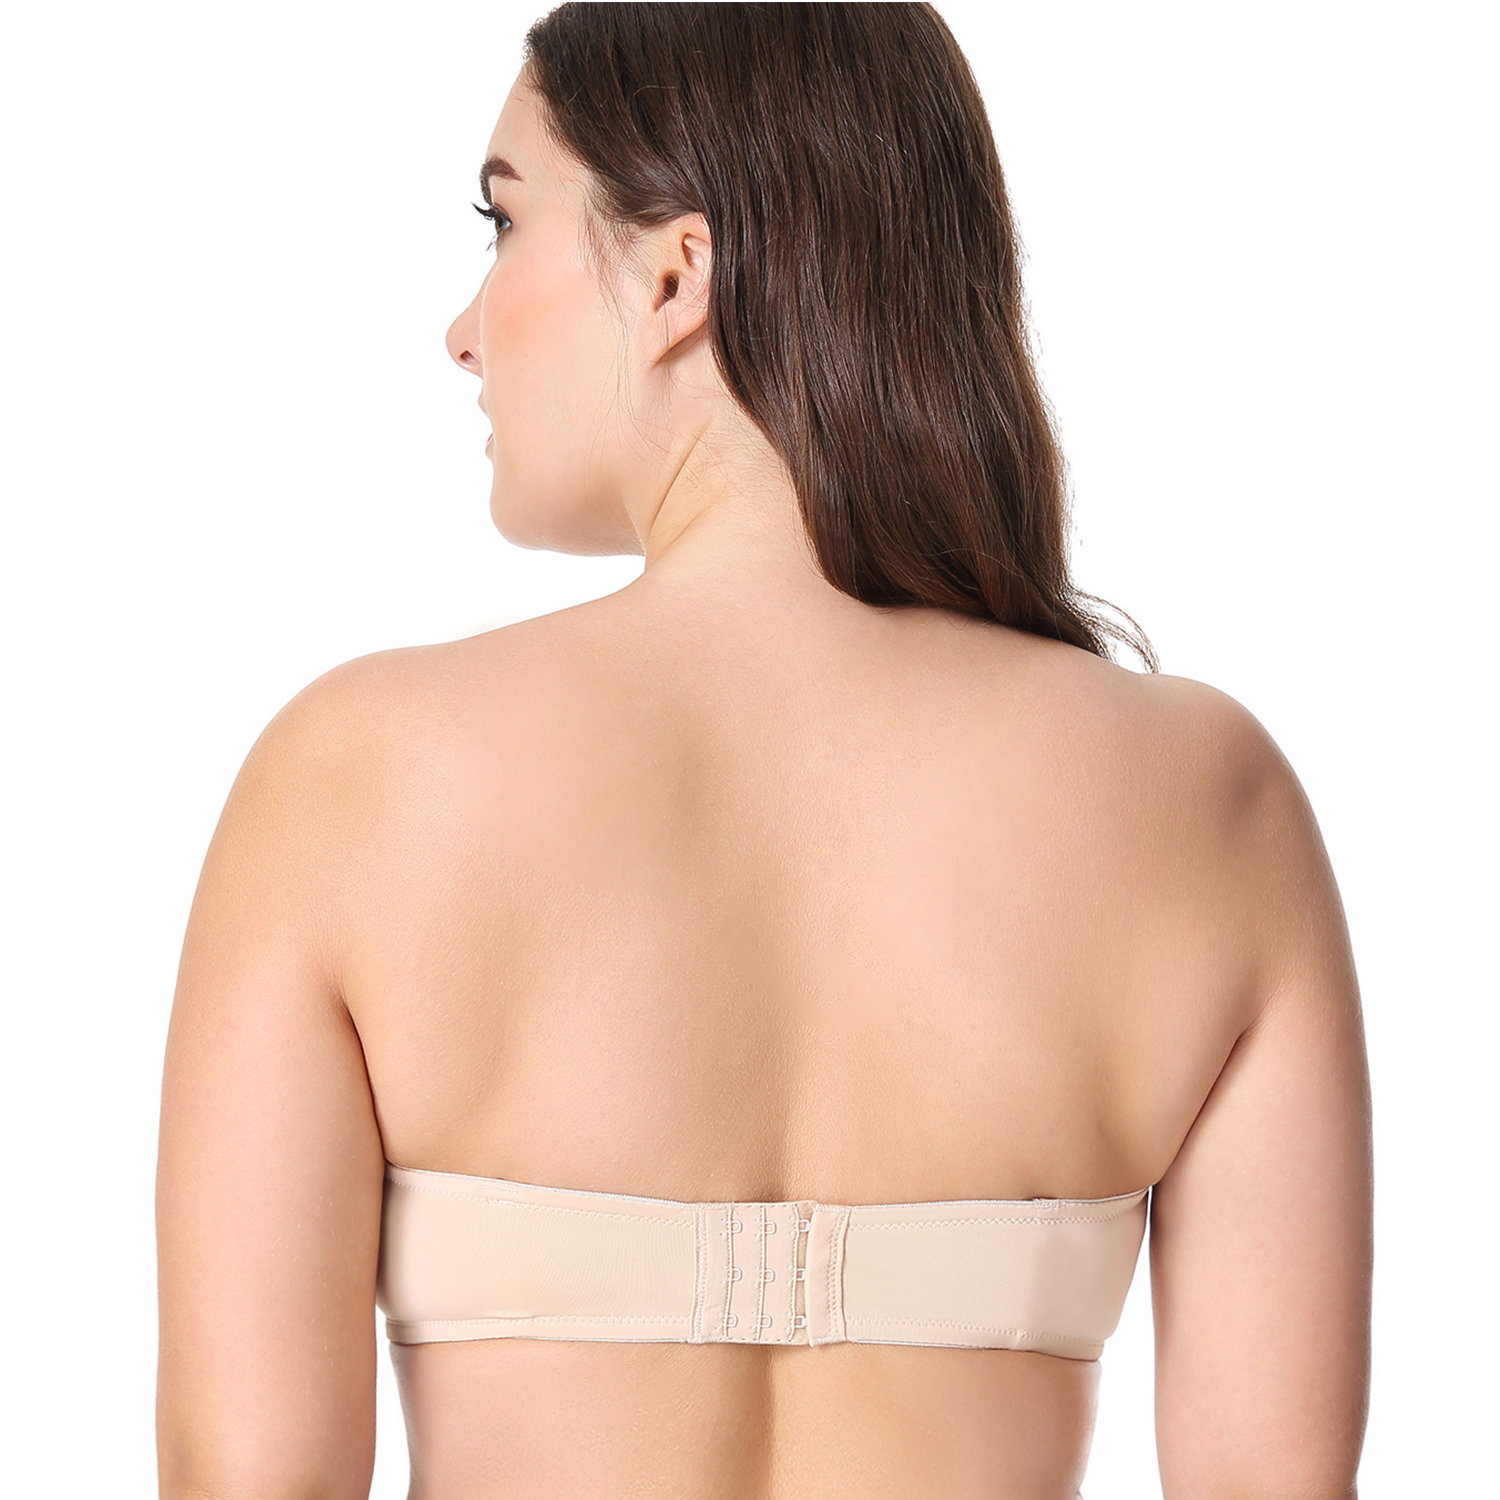 Women Low Cut Strapless Smooth Demi Shell Shape Removable Pad Multiway Bra